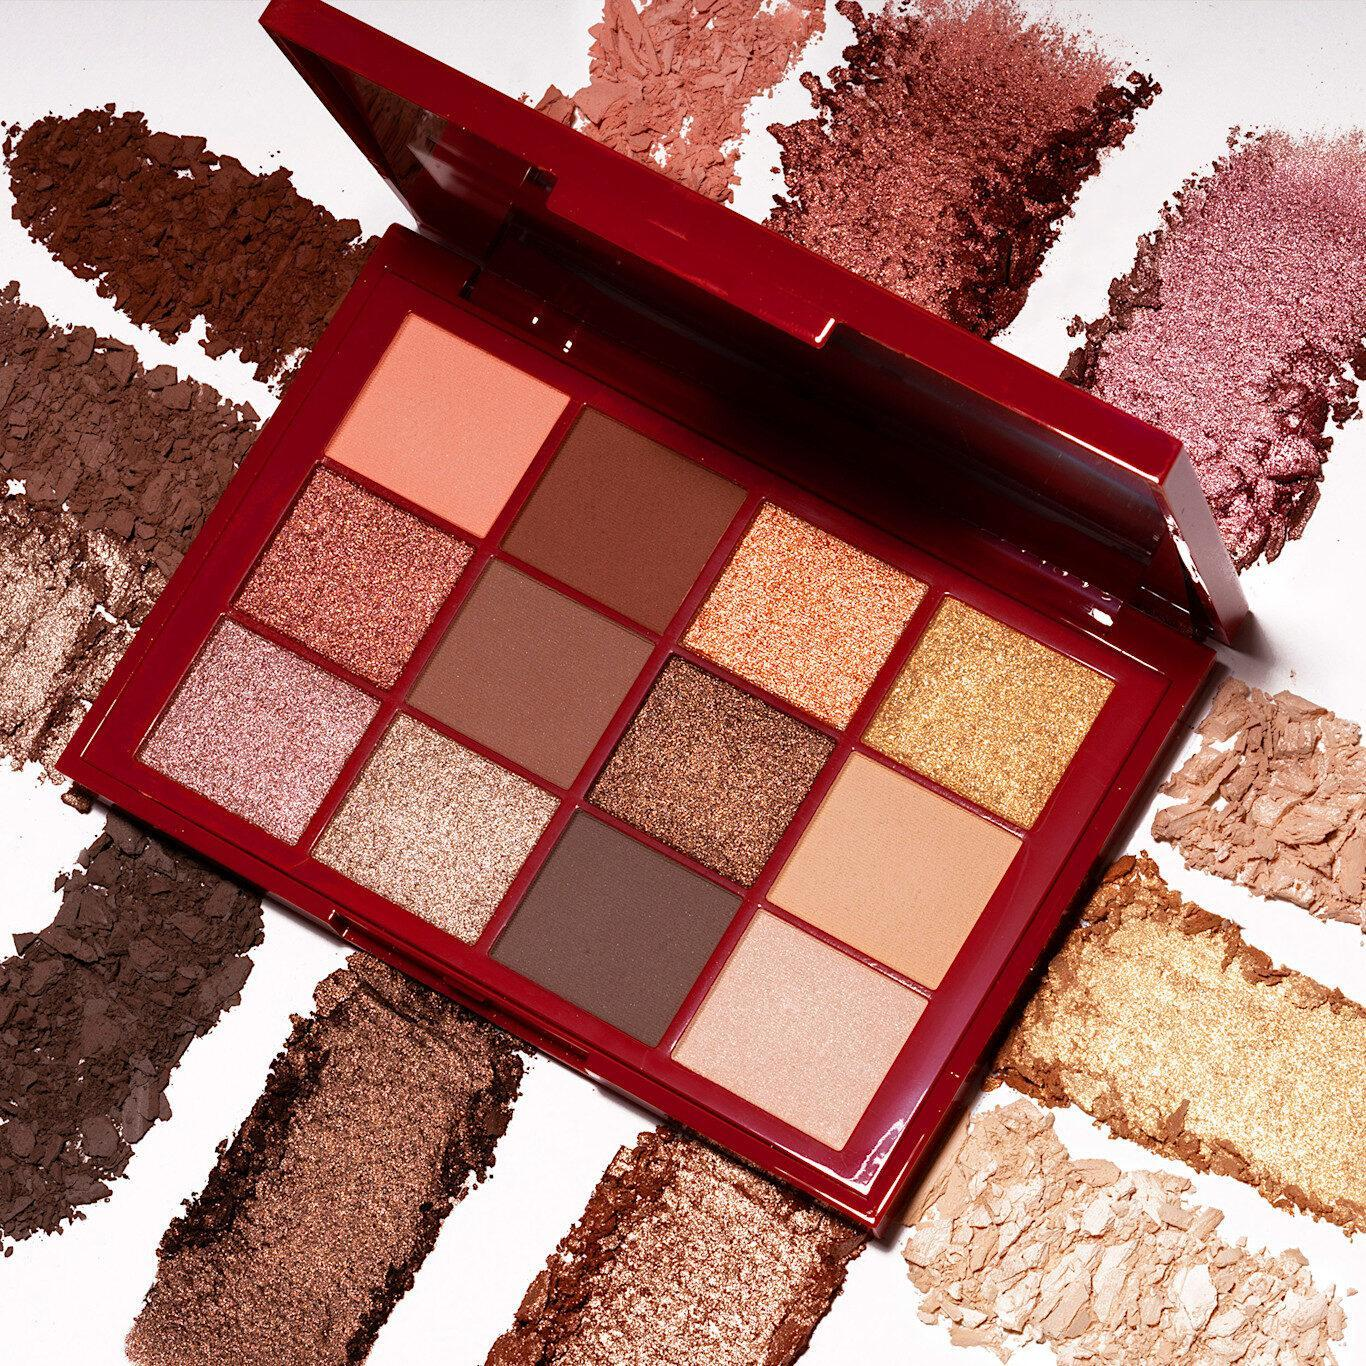 Lida Hallberg Cosmetics The New Golden 20´s Palette Open With Crash Swatches